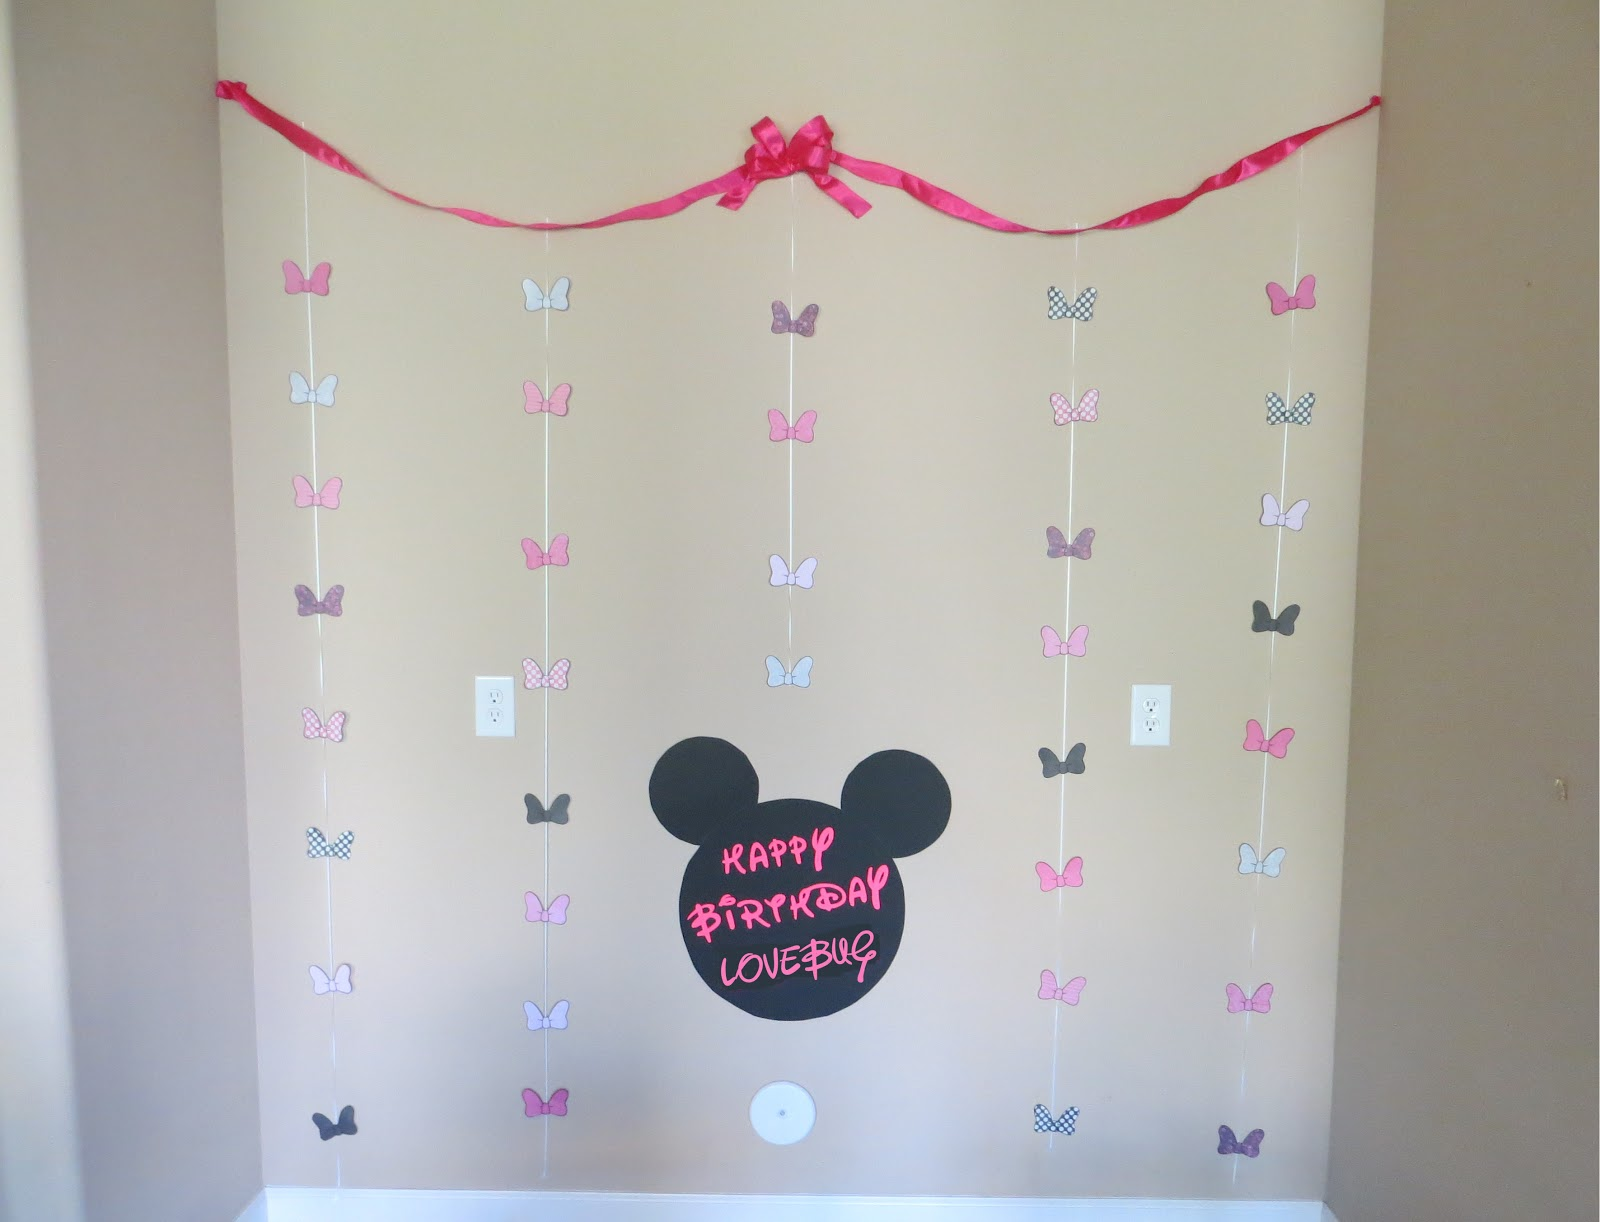 Lovebugs Bow Tique Birthday Party Free Printables